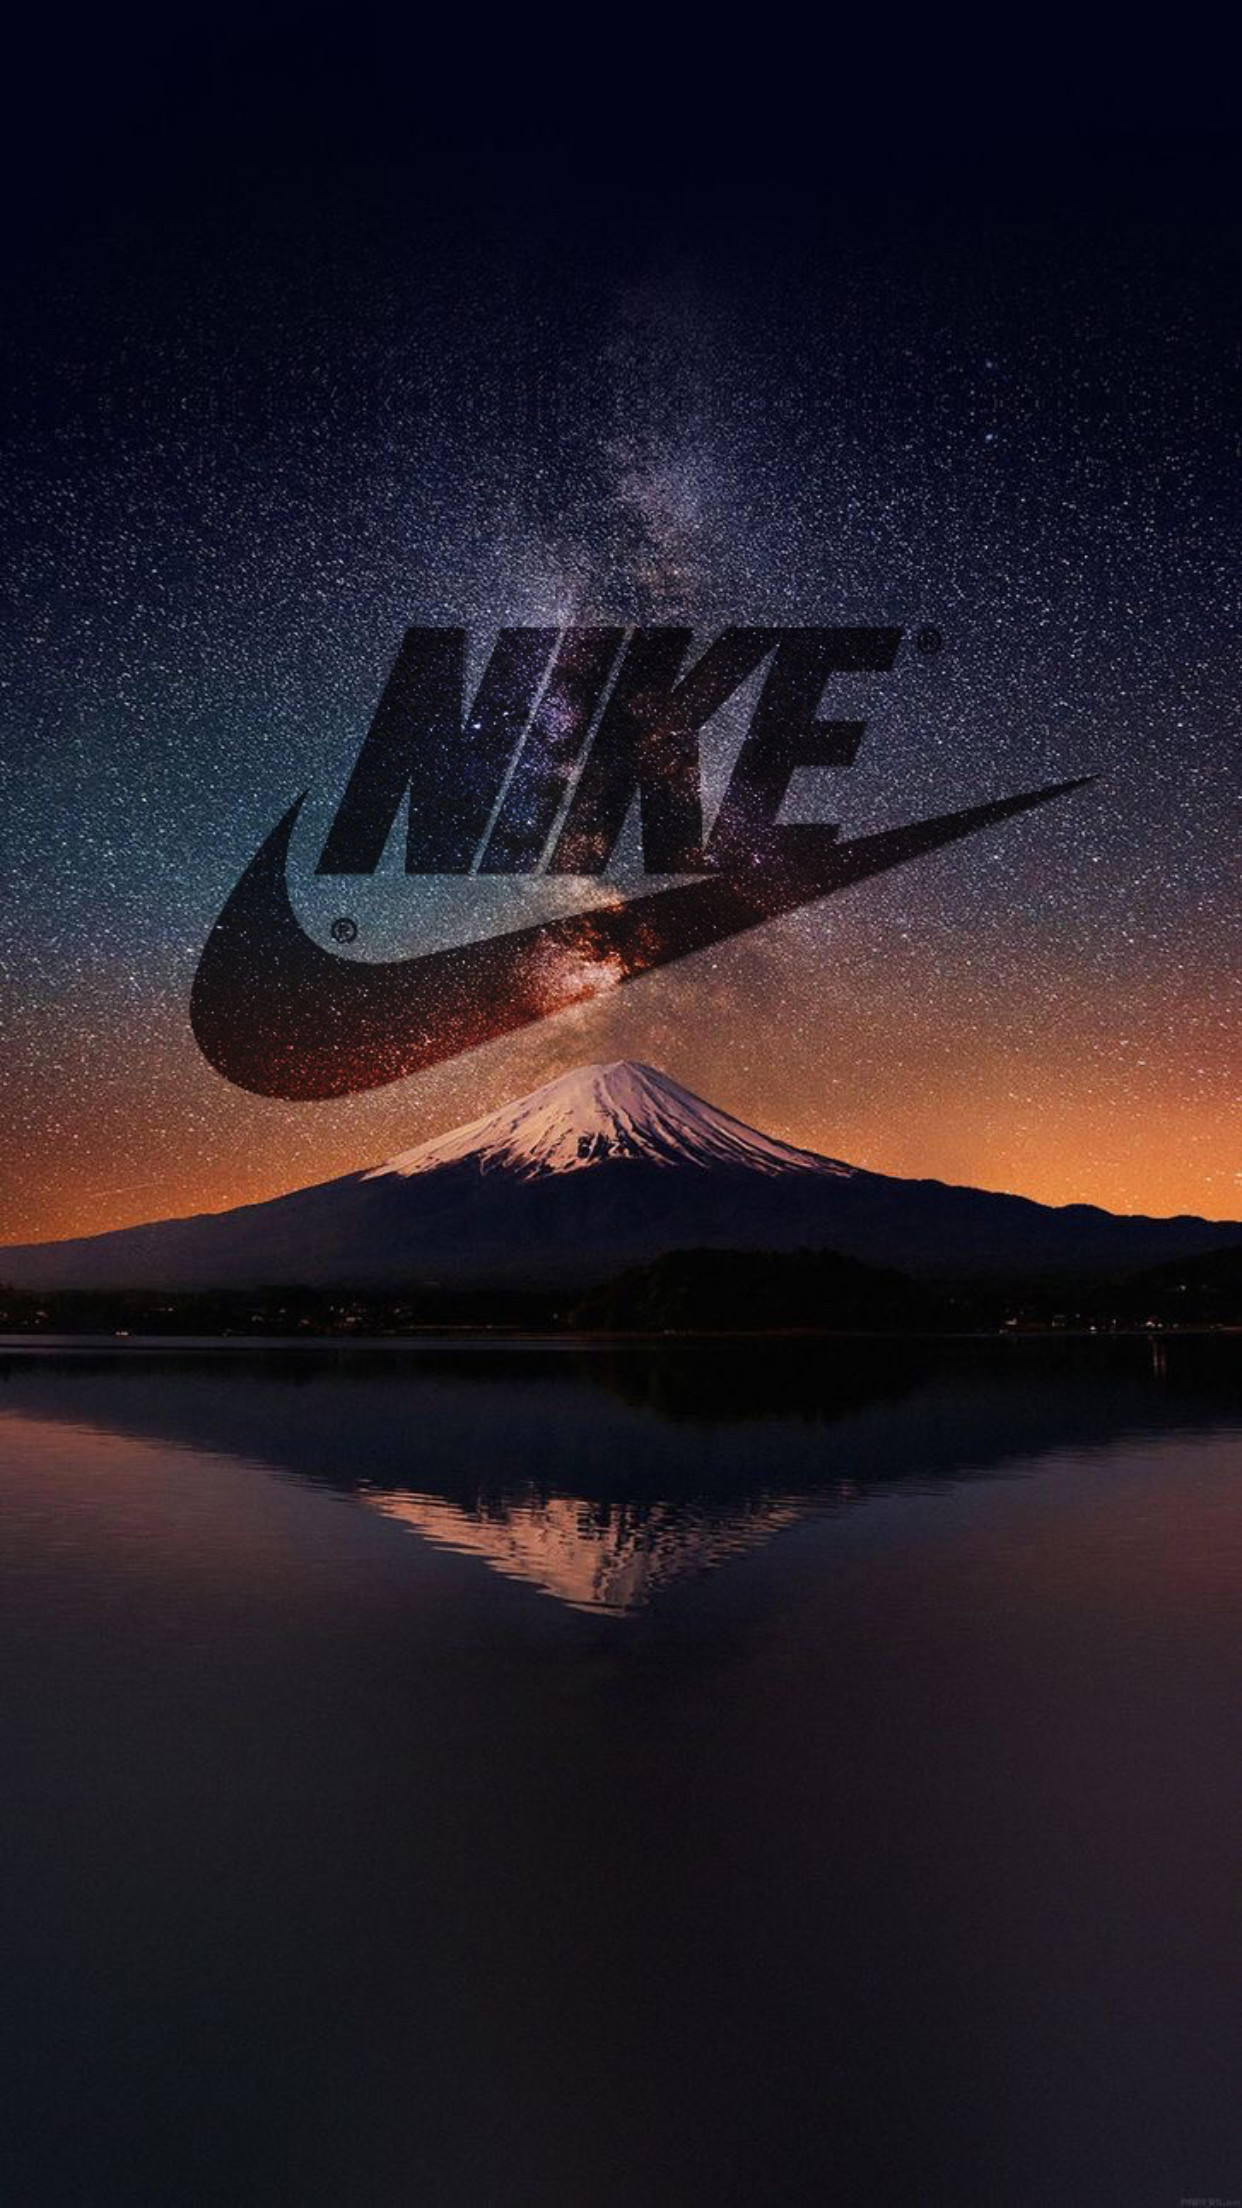 Res: 1242x2208, Nike Wallpaper, Nike Logo, Cell Phone Wallpapers, Supreme Wallpaper, Hypebeast, Messi, Crew Neck, Backgrounds, Wallpapers